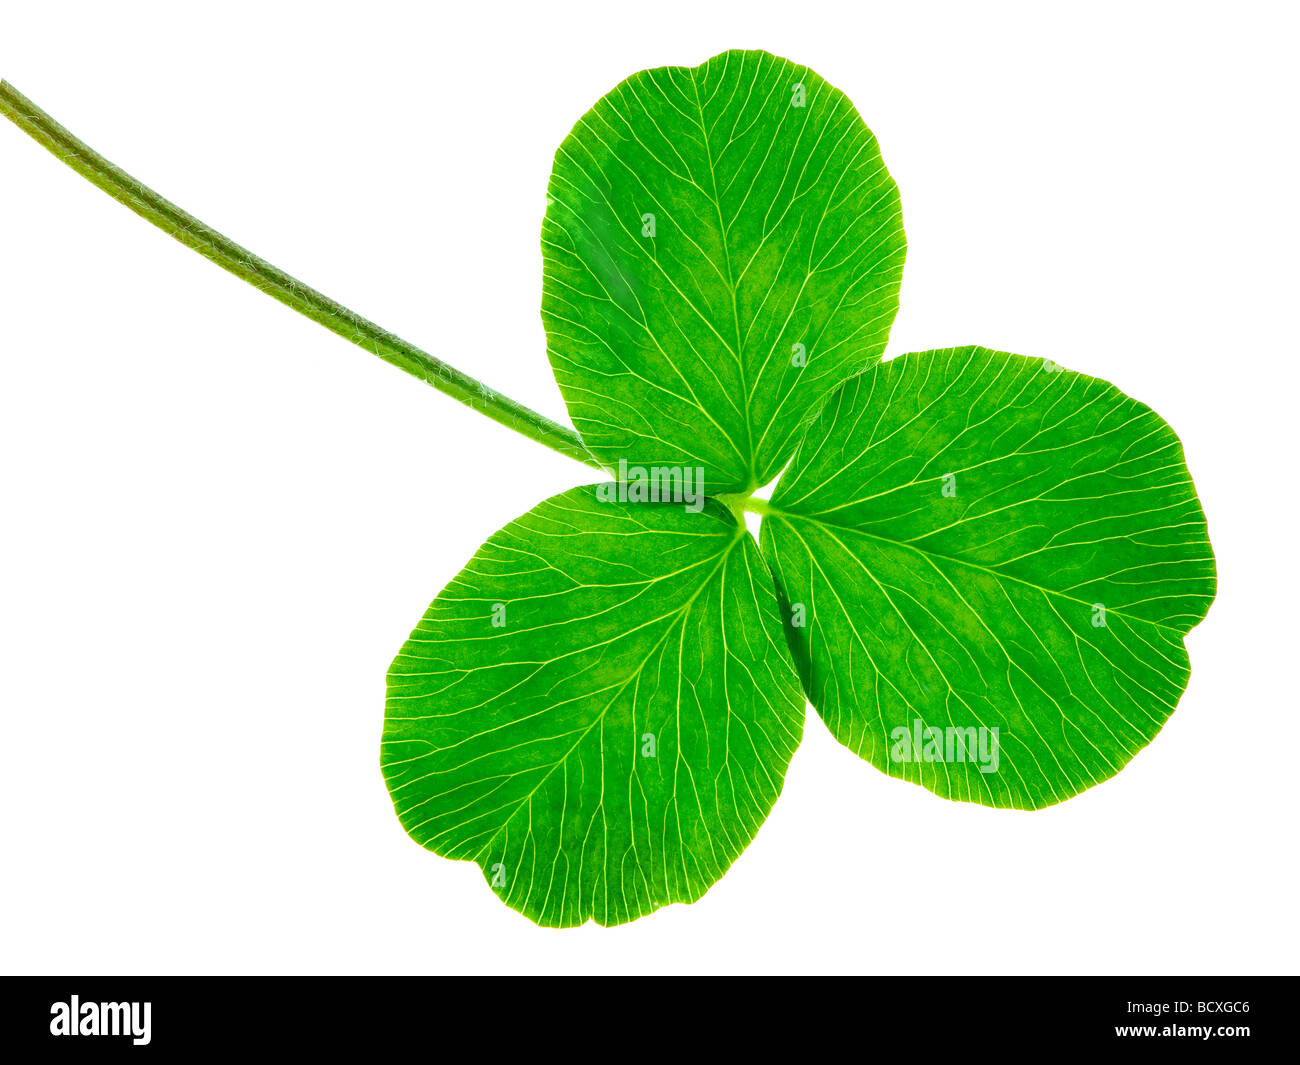 clover isolated on a white background - Stock Image